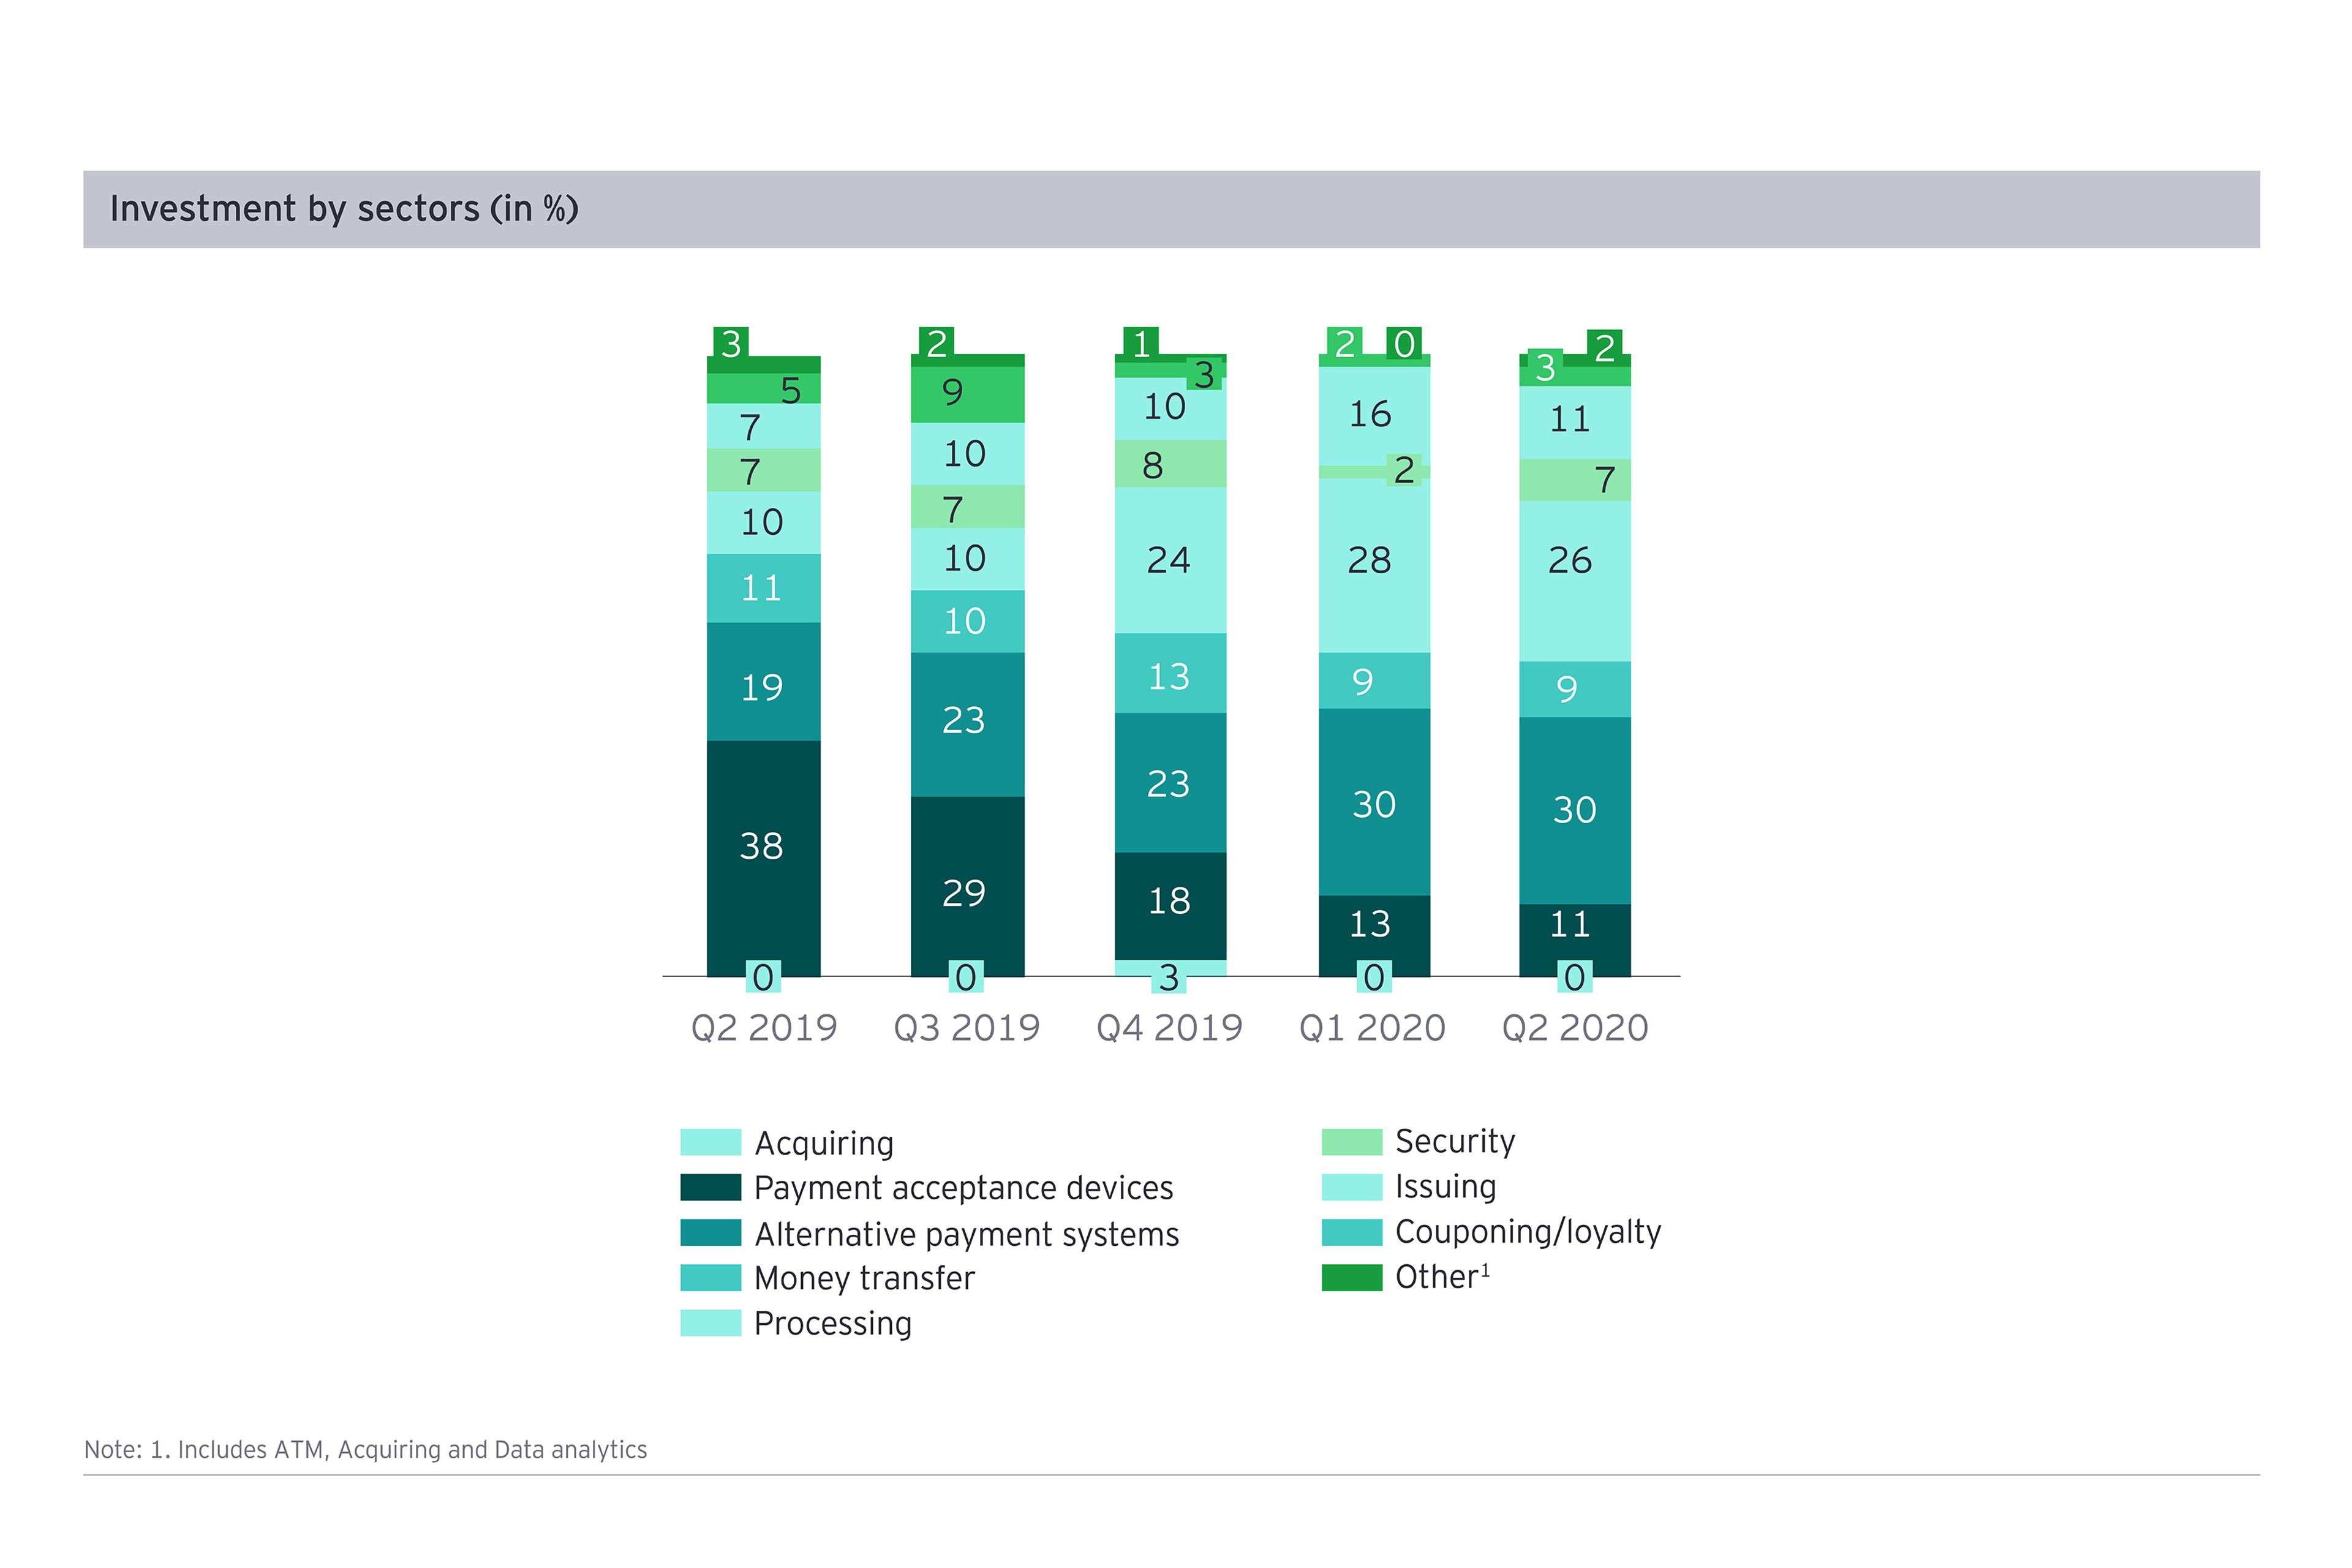 Venture capital deals in payments by sector (%), Q2 2020